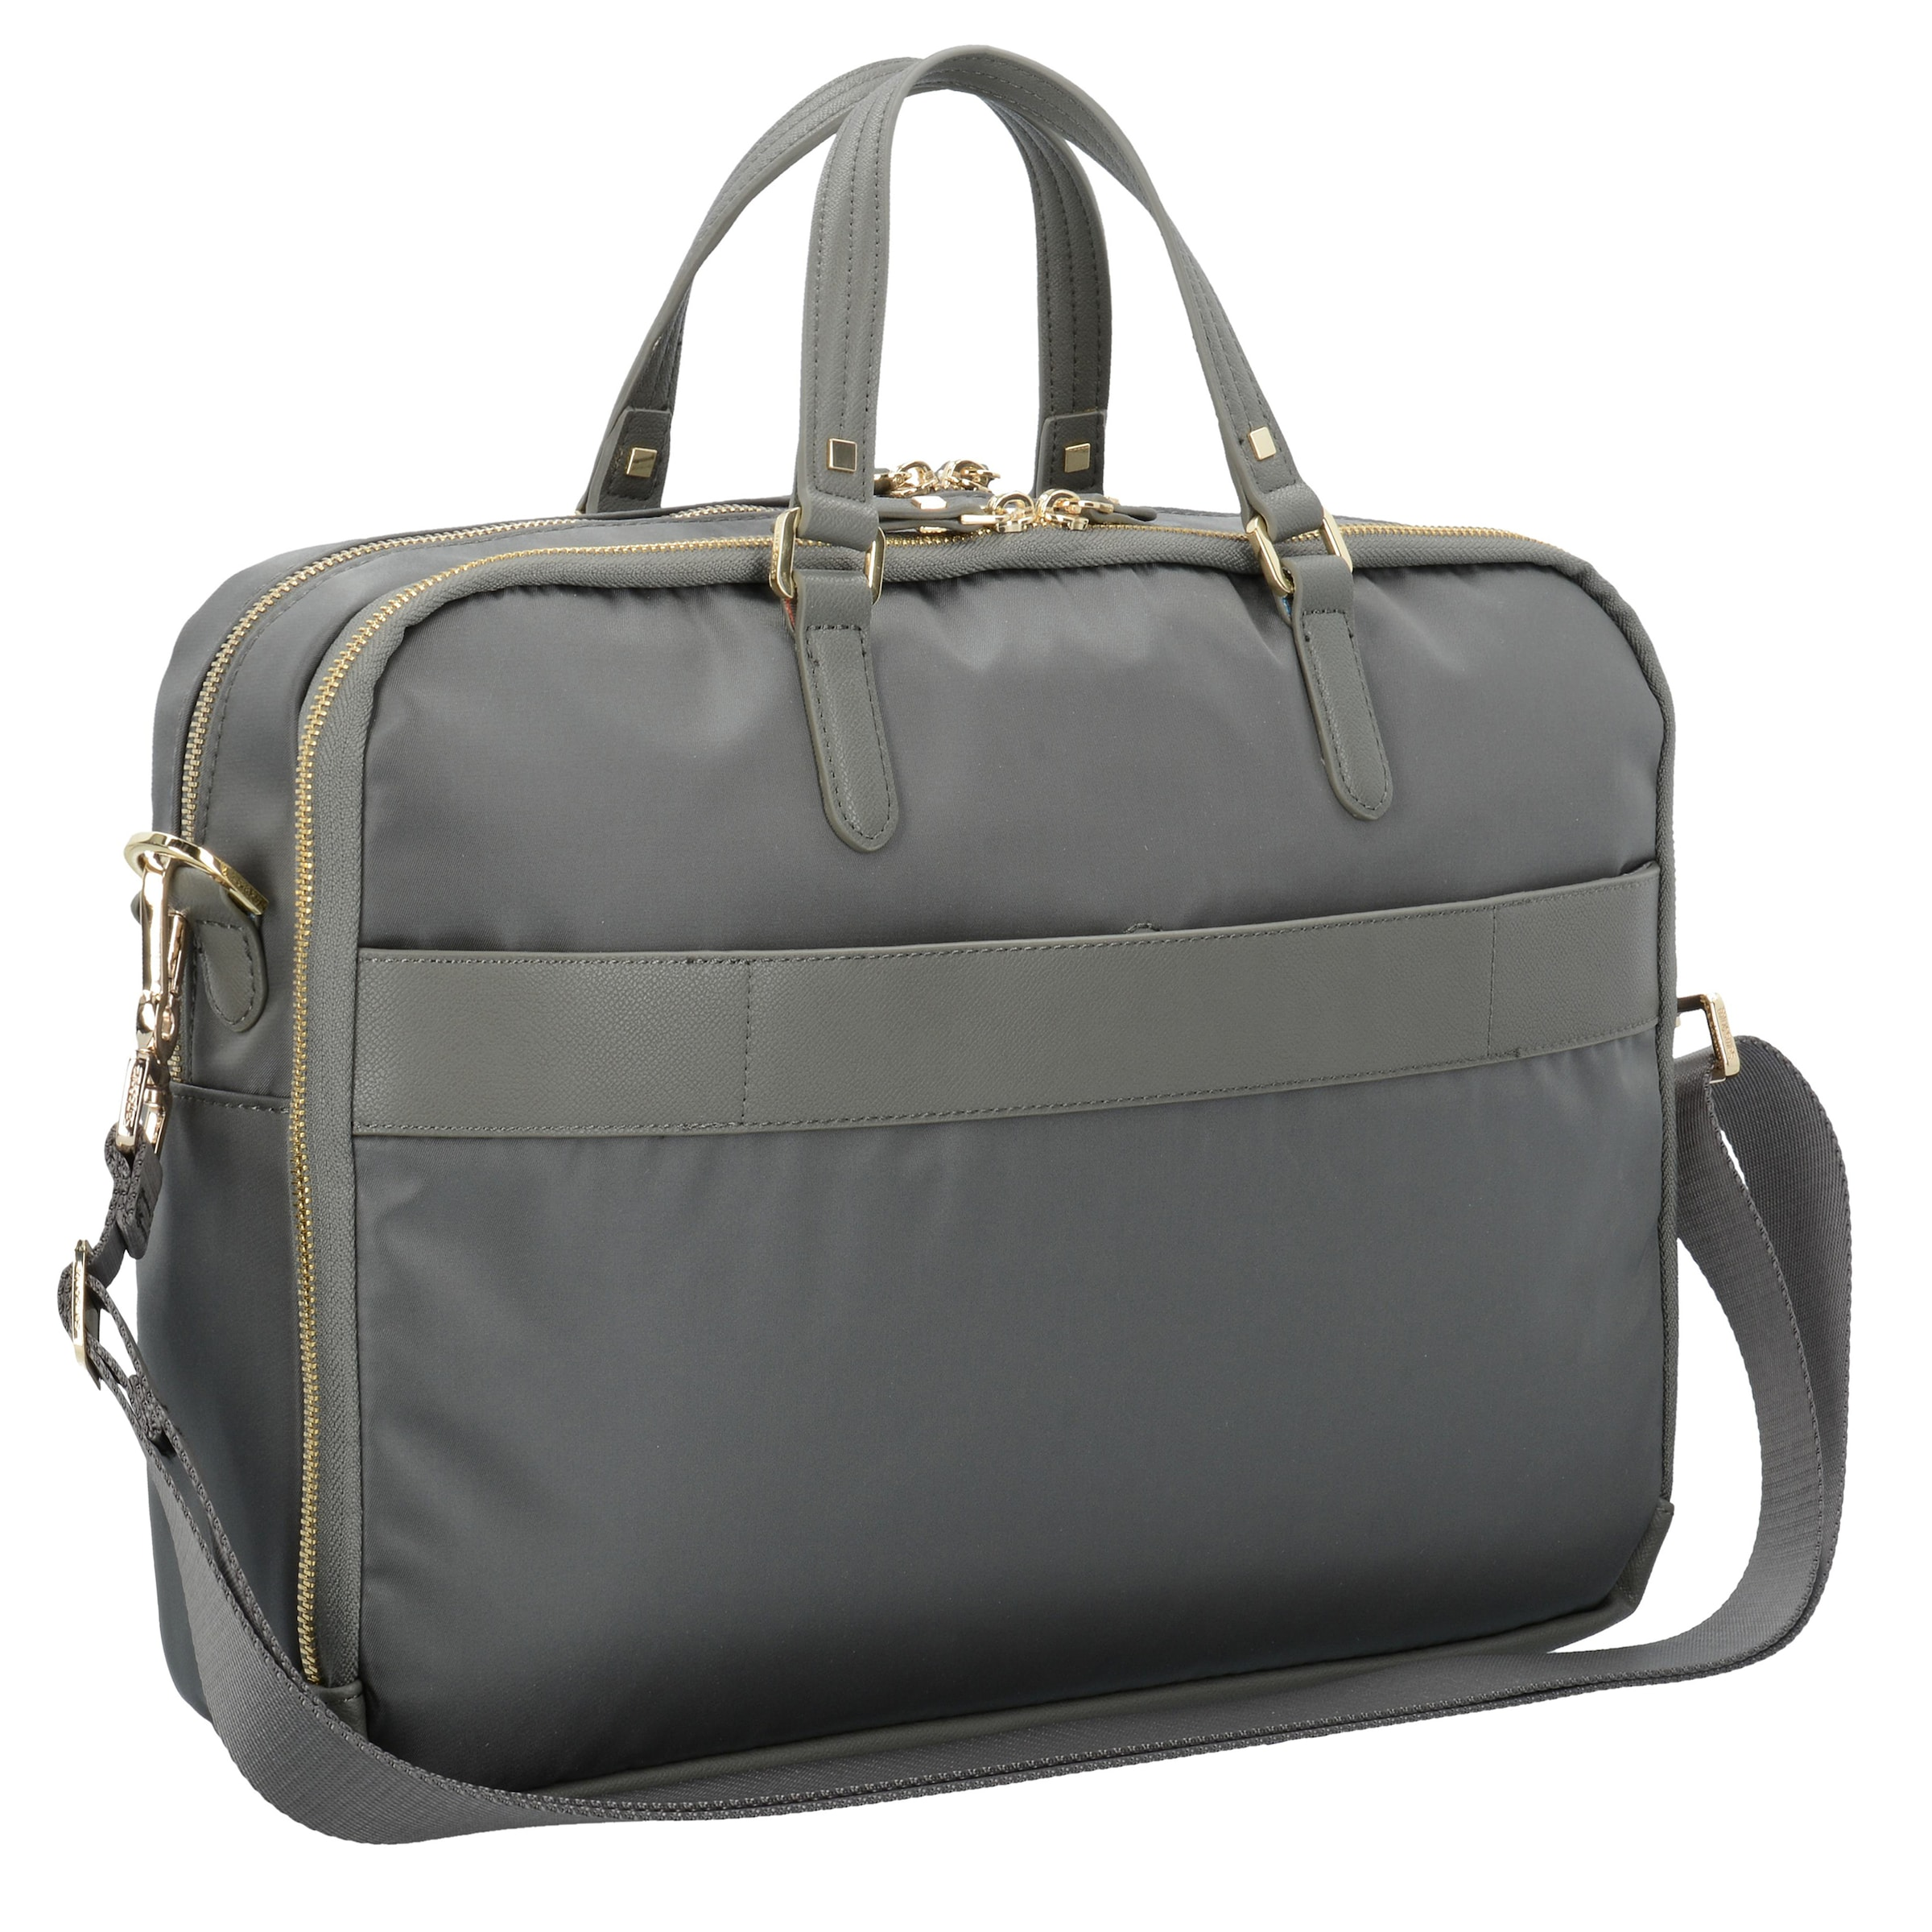 Samsonite Businesstasche Karissa Cm In 35 Laptopfach Biz Grau n0Nvm8w